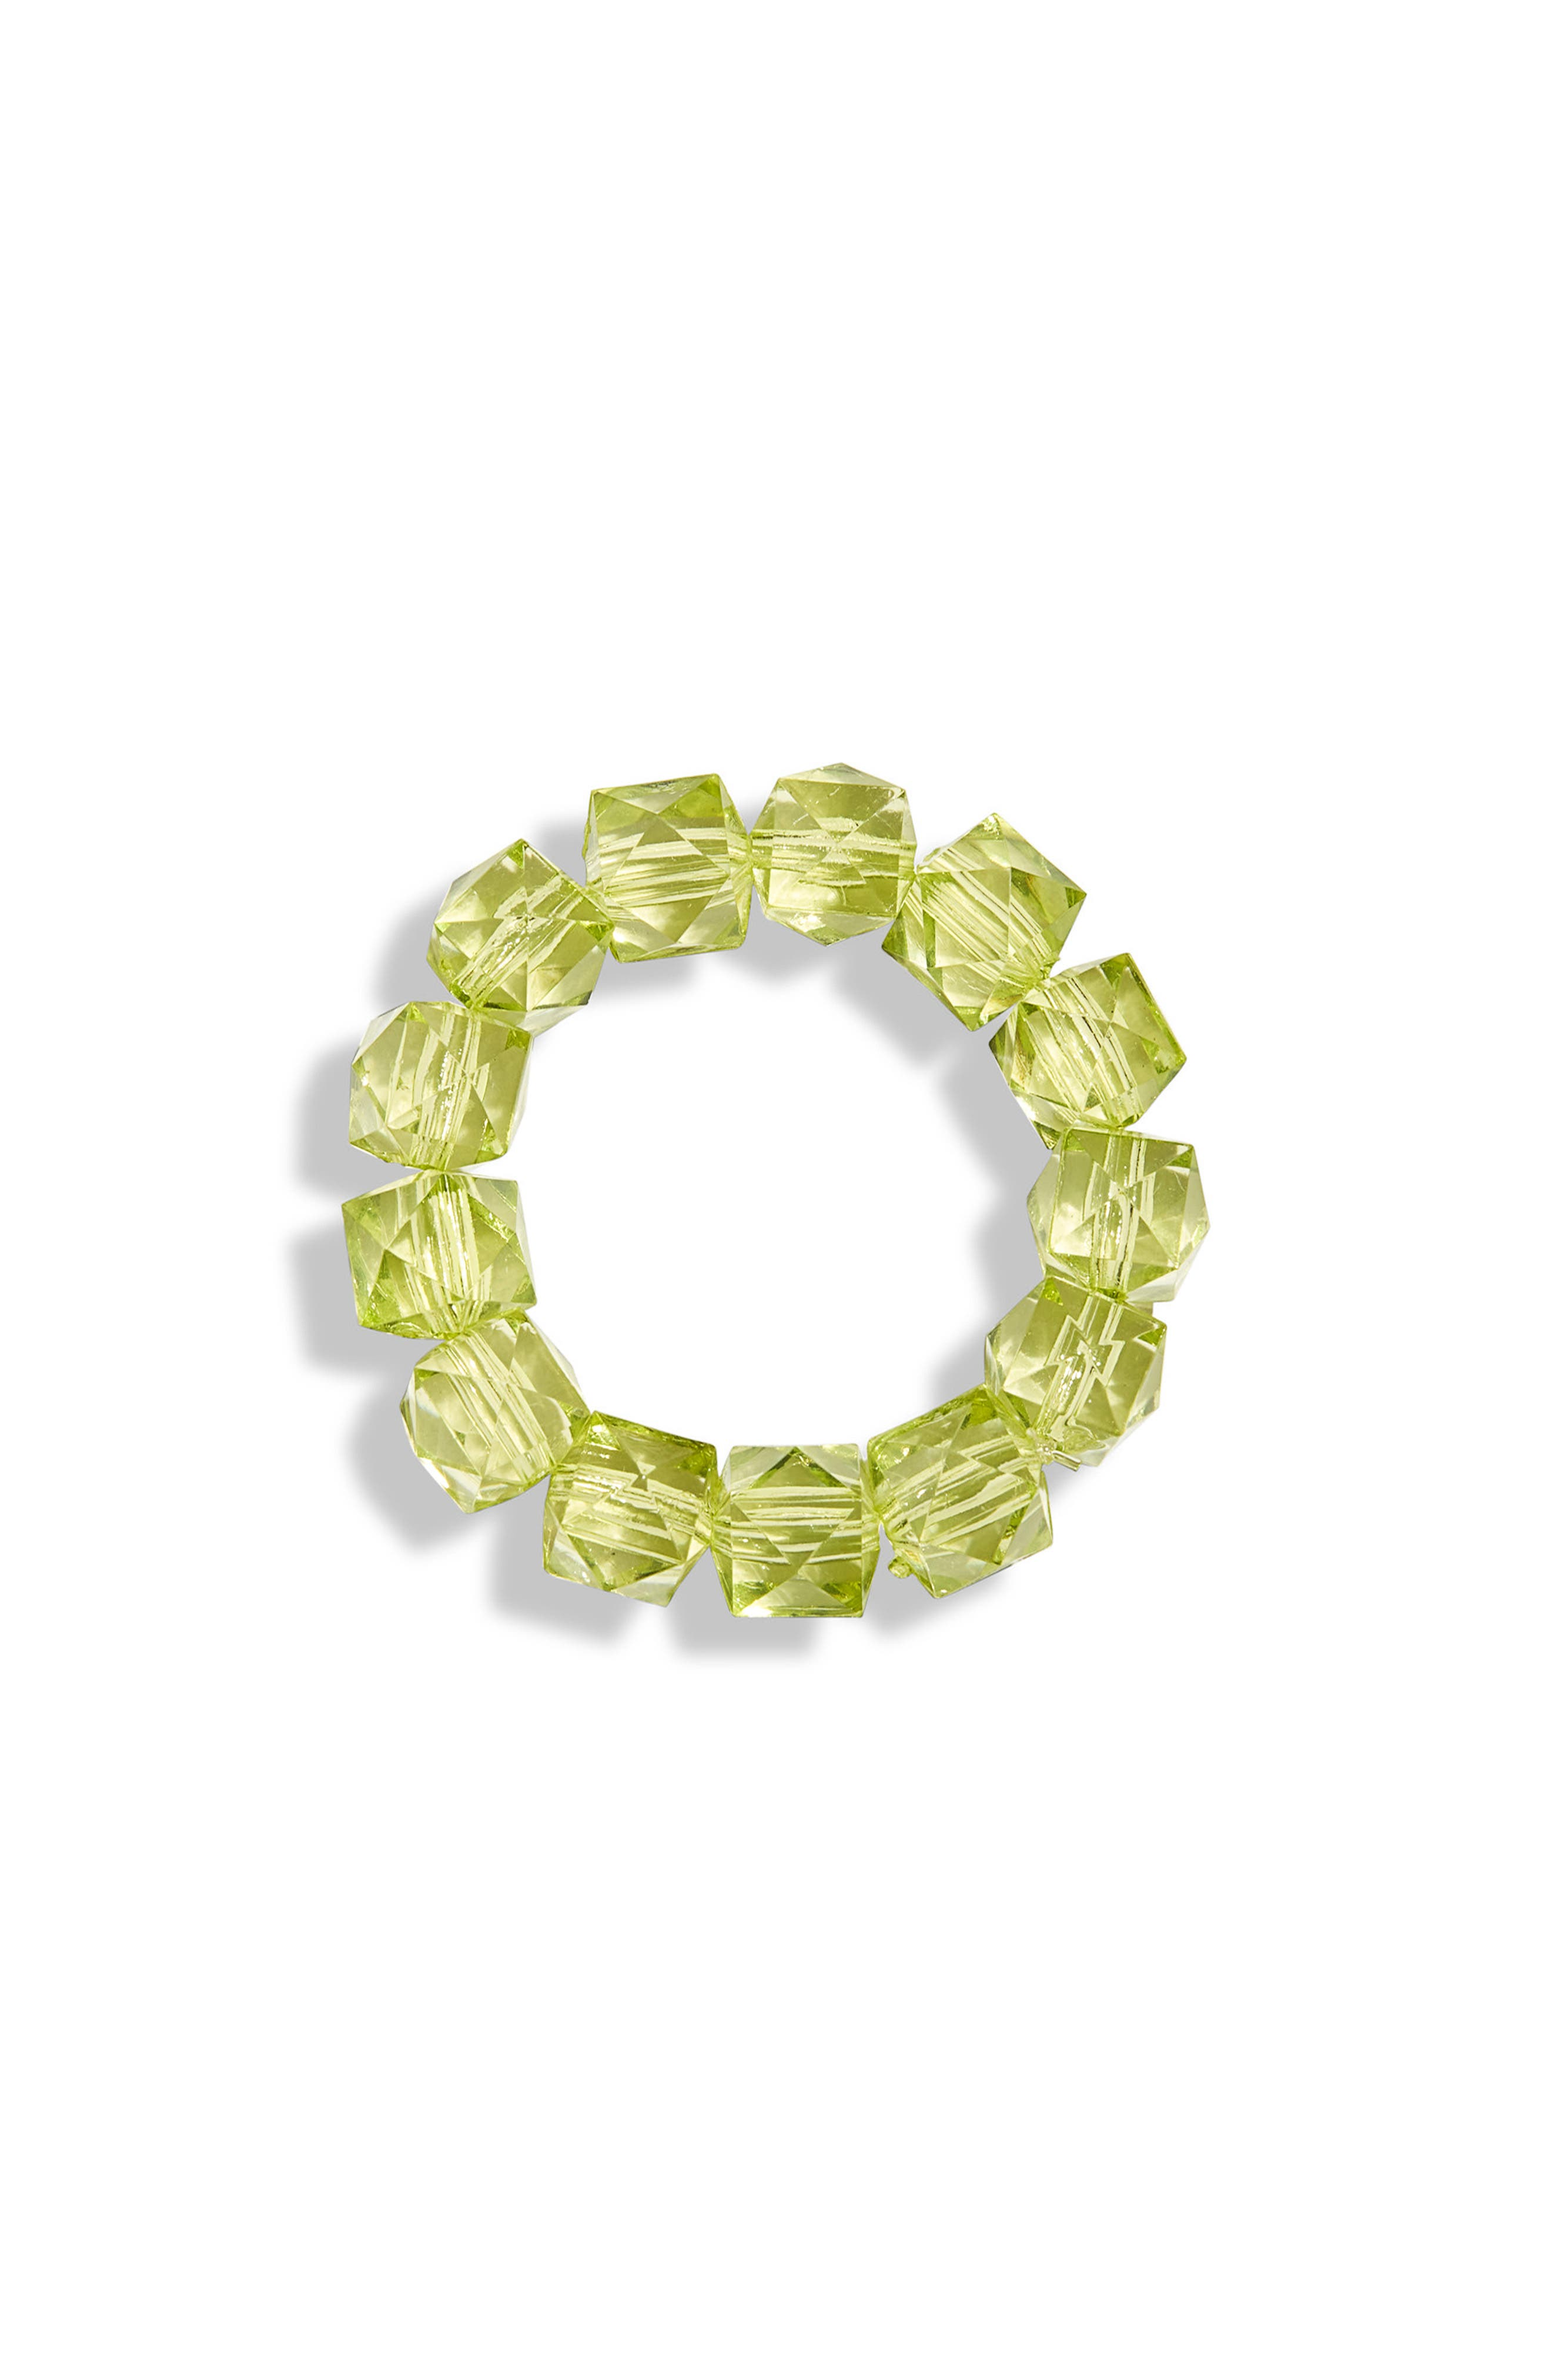 Jewels Solid Rock Candy Bracelet,                         Main,                         color, GREEN